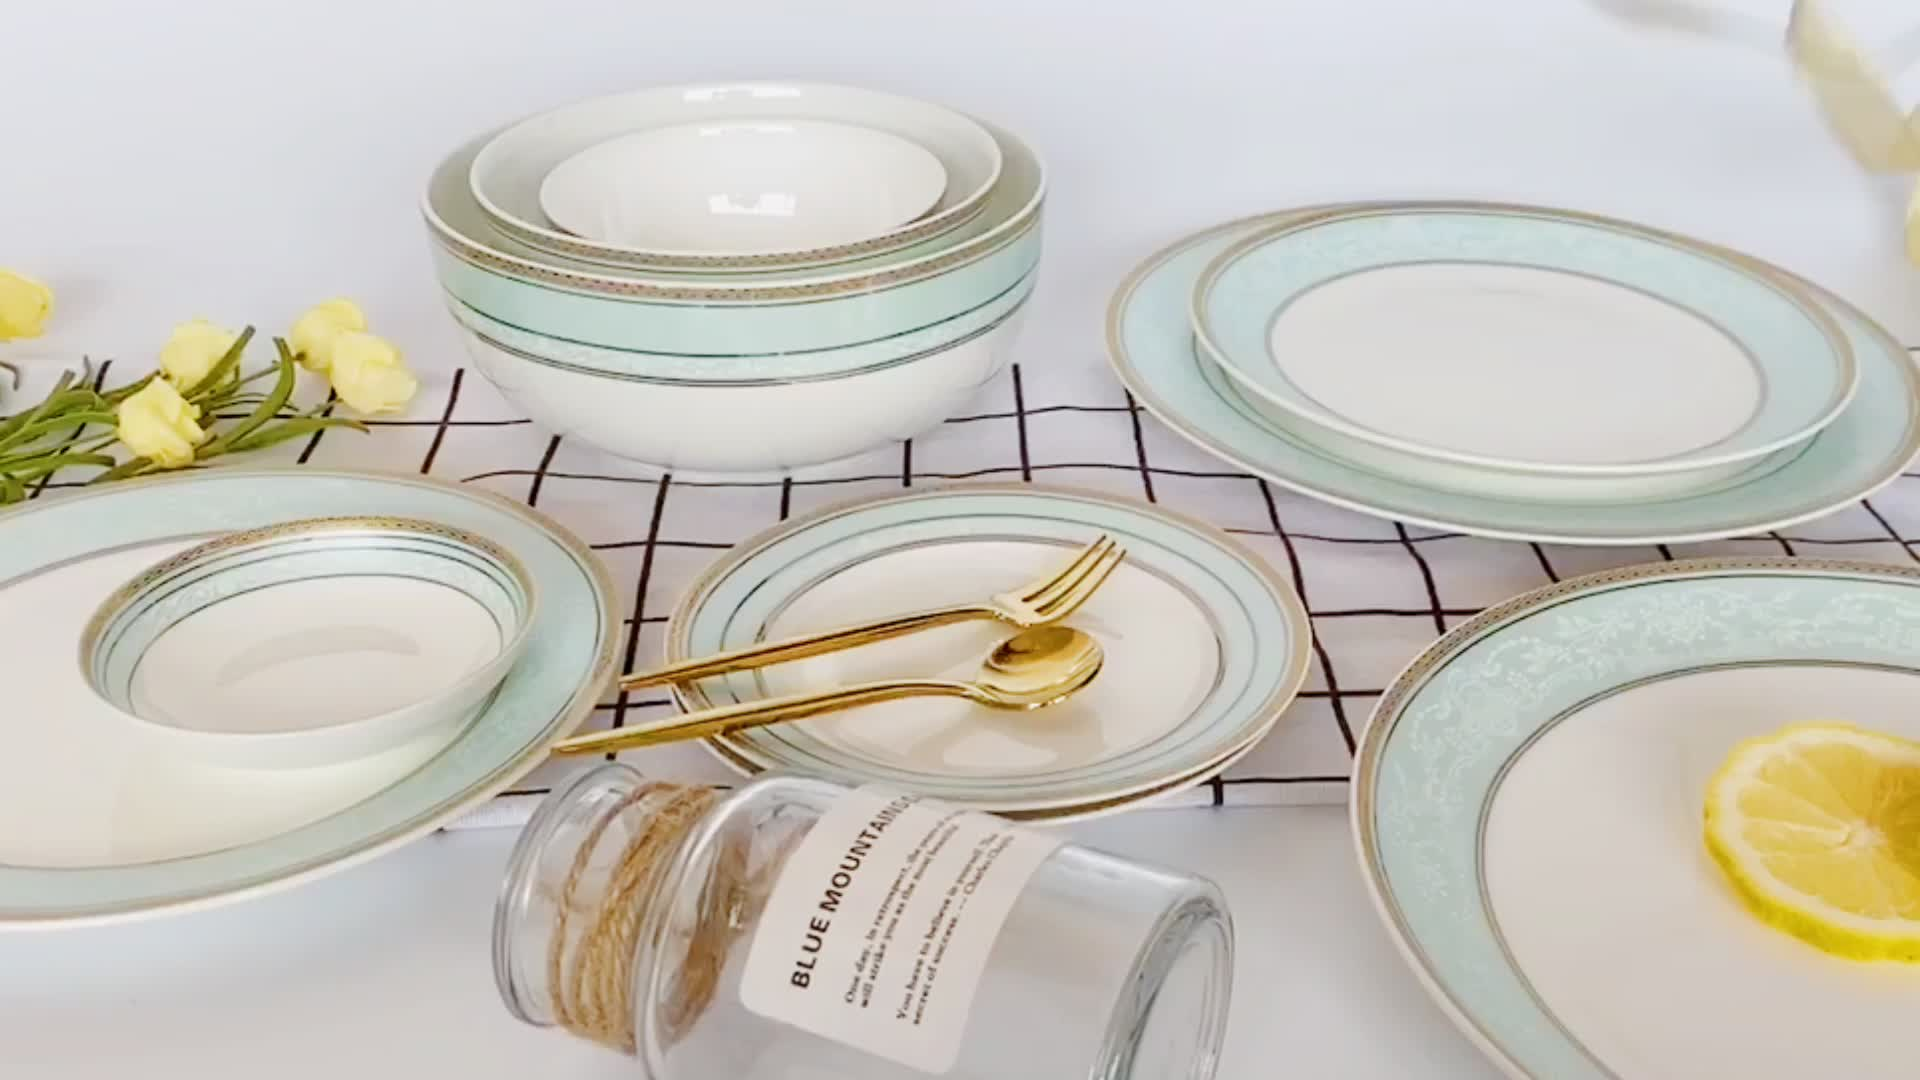 """2020 hot selling bone china plate 8"""" 10"""" 12 inch dinner plates ceramic charger plate buy one get one free"""